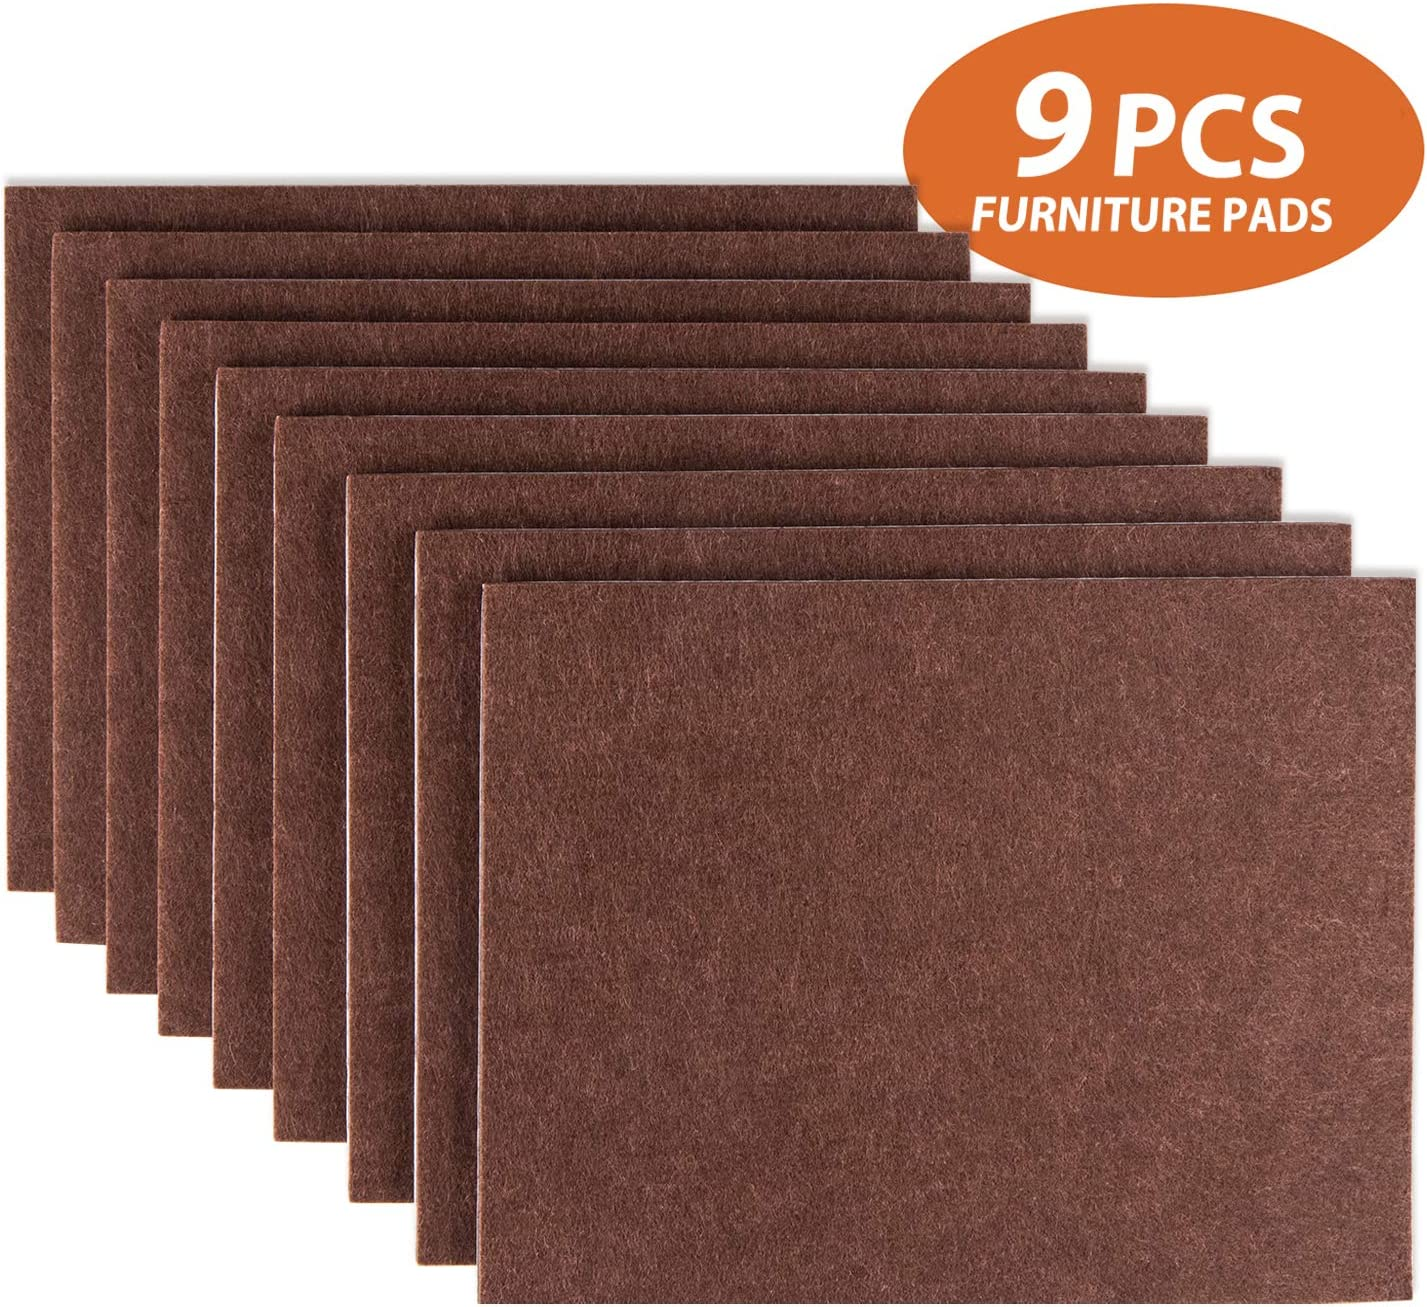 "Furniture Pads Set of 9 Self Adhesive Furniture Felt Pads, 8"" x 6"" x 1/5"" Cuttable Felt Chair Pads, Anti Scratch Furniture Floor Protectors for Furniture Legs Hardwood Floor, Brown"